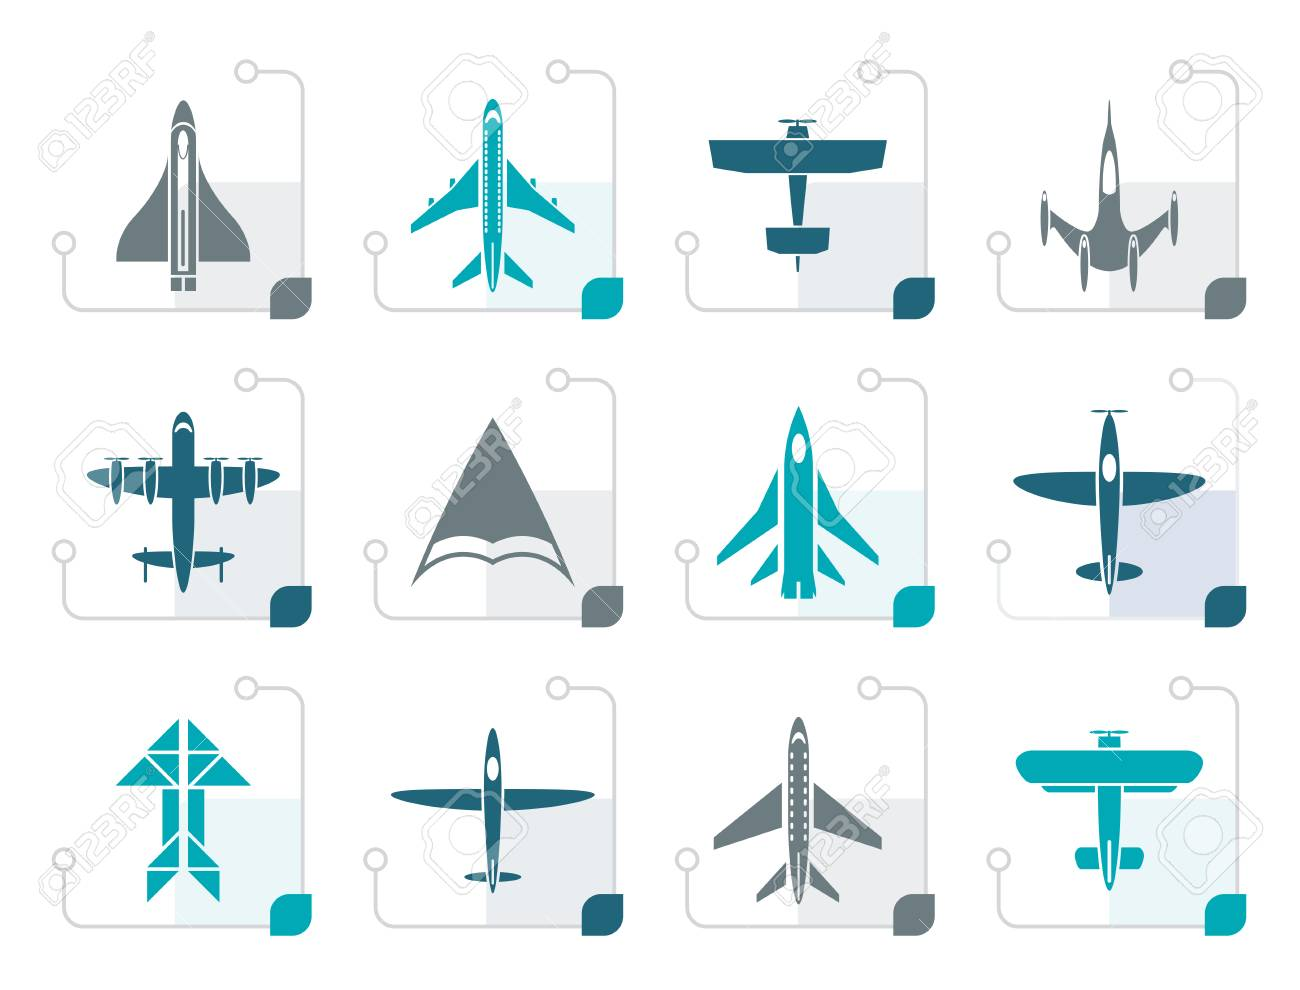 Stylized different types of plane icons - vector icon set - 74538945